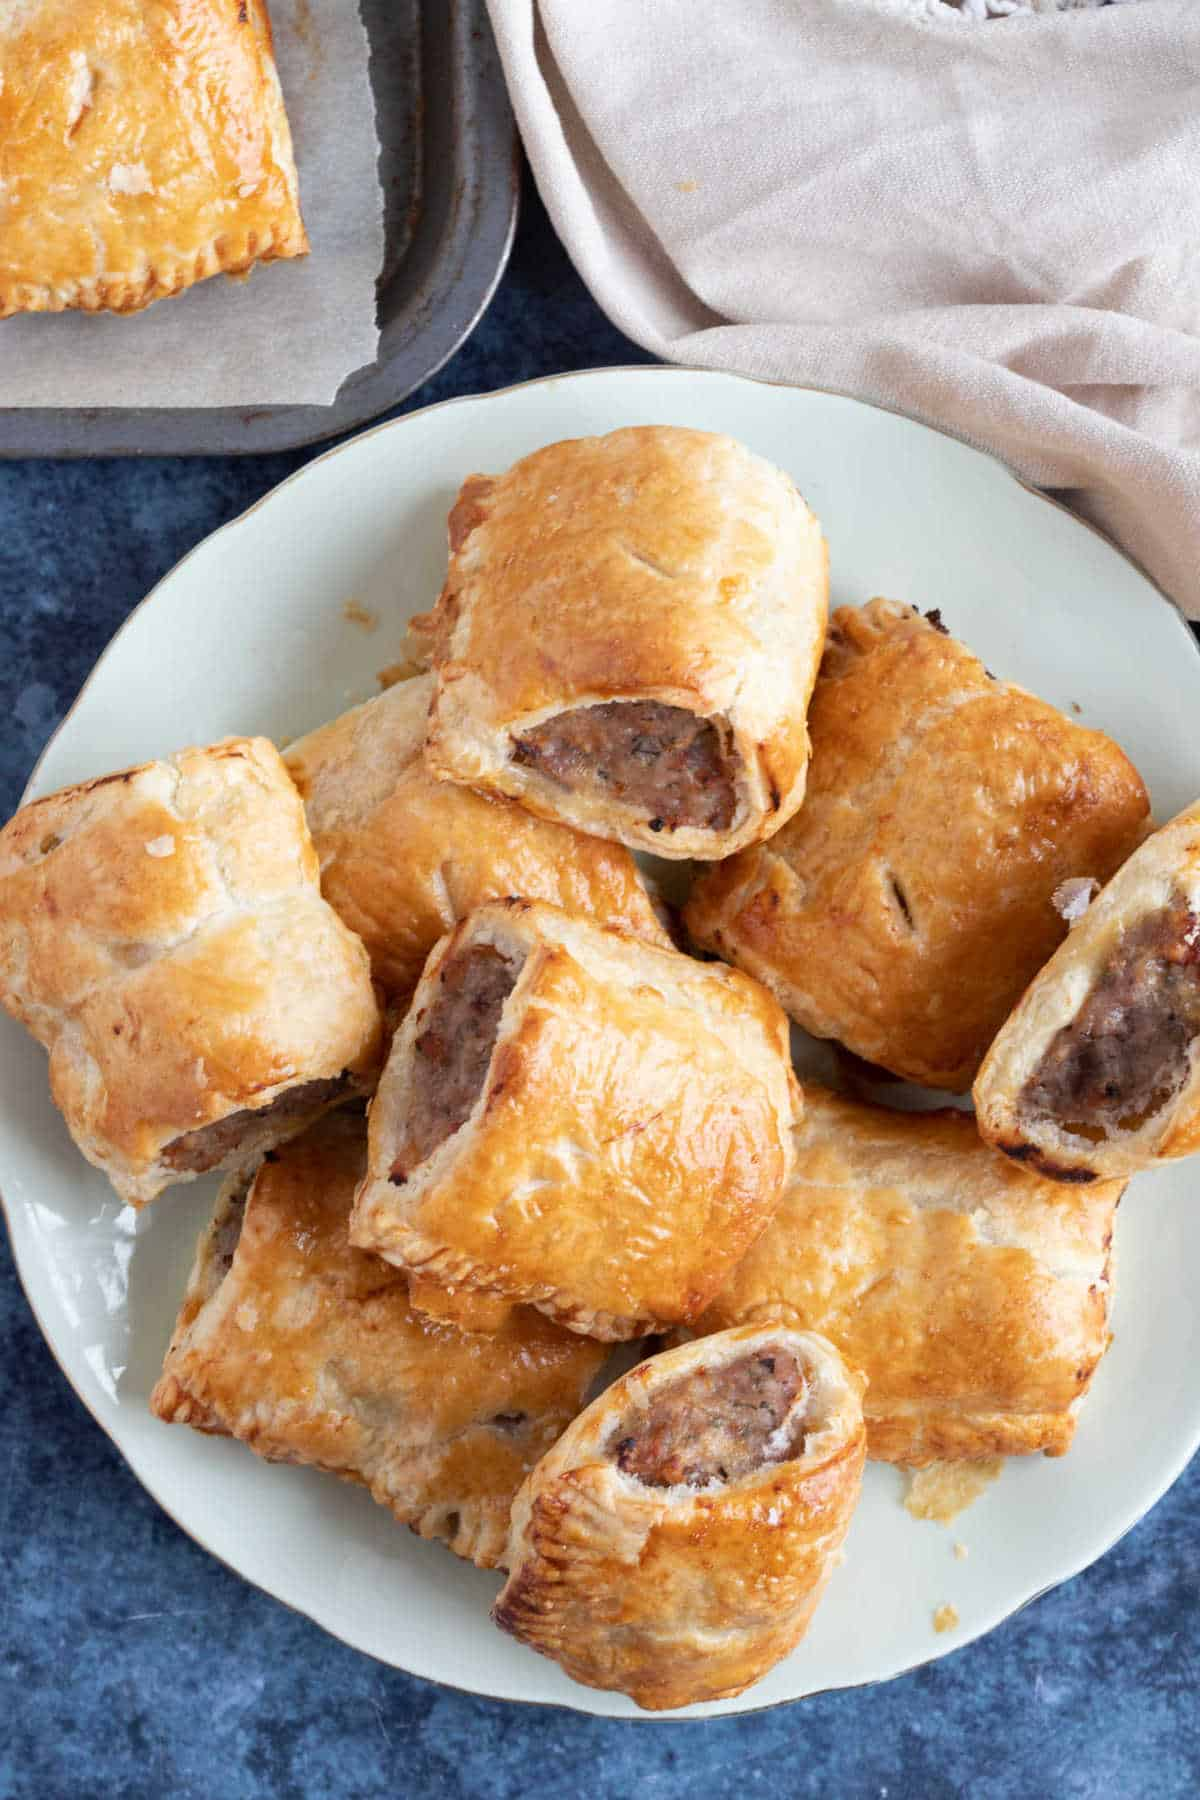 A plate of sausage rolls.